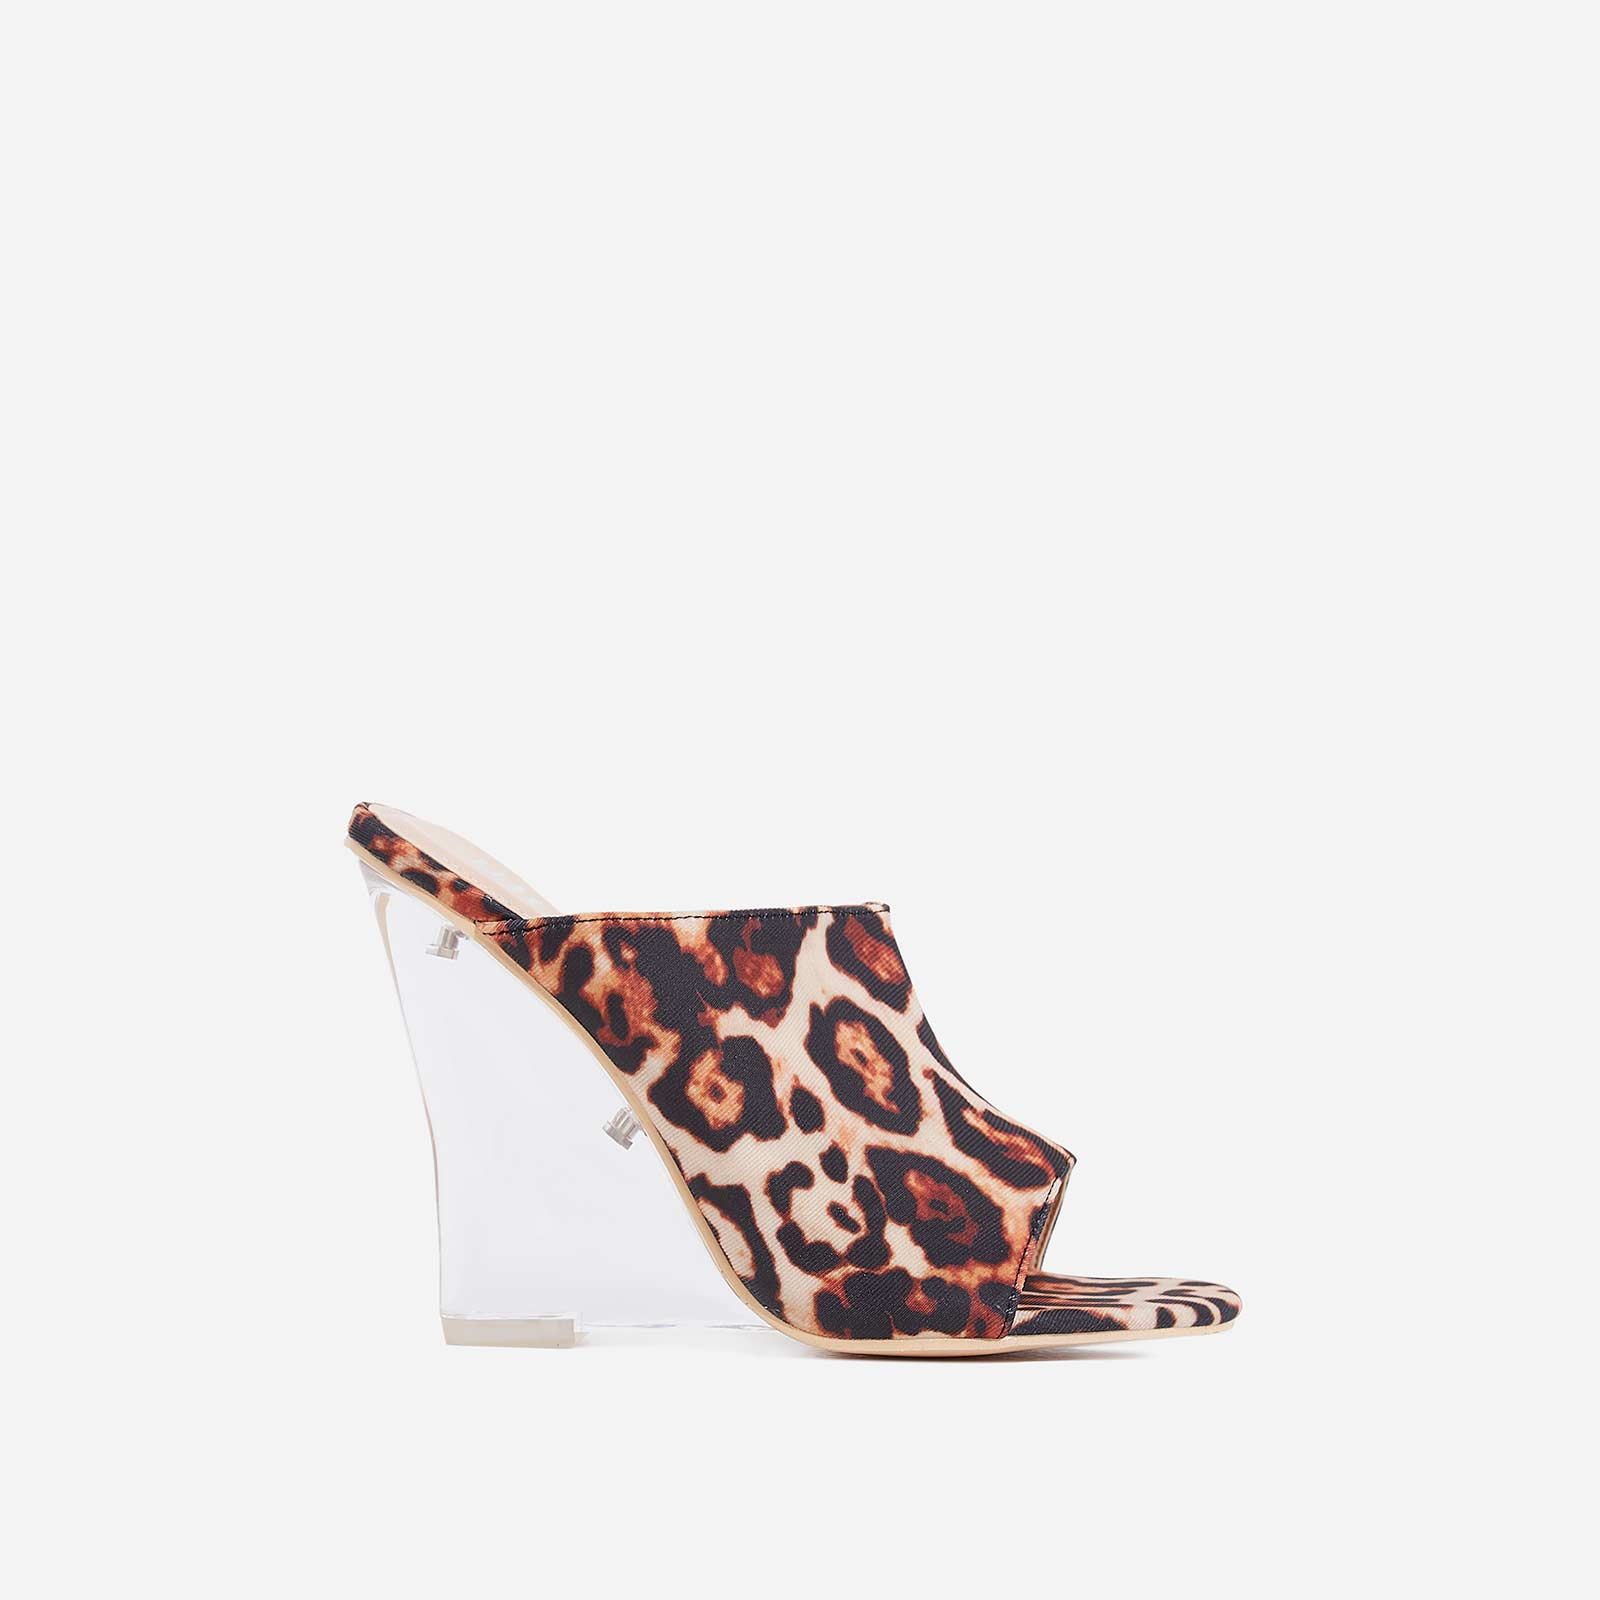 Candy Perspex Wedge Peep Toe Mule In Tan Leopard Print Faux Suede